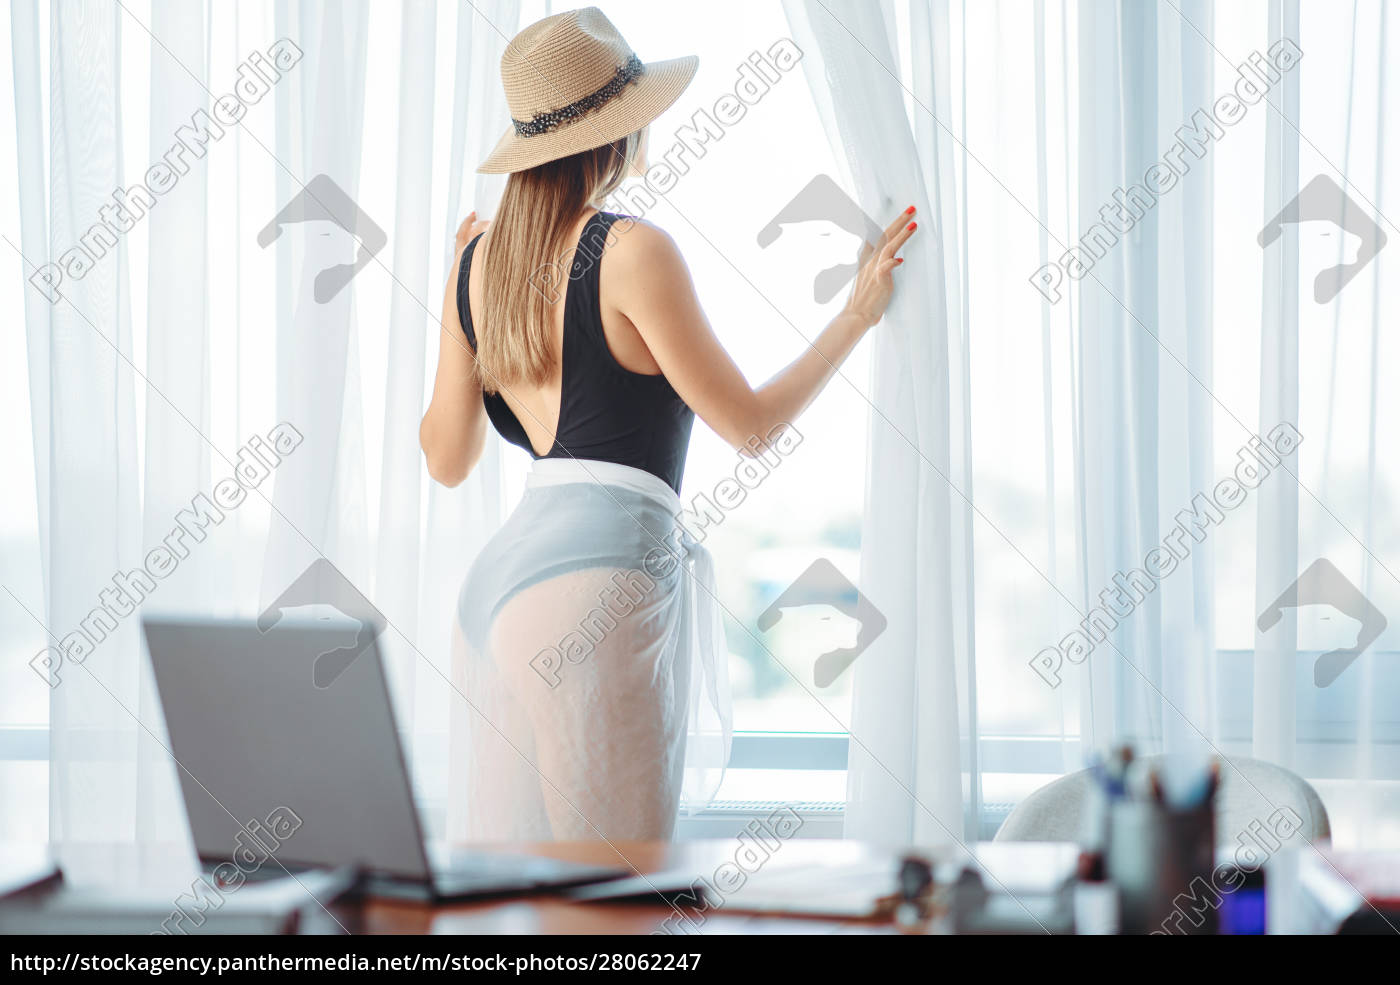 female, person, at, window, , dreaming, about - 28062247